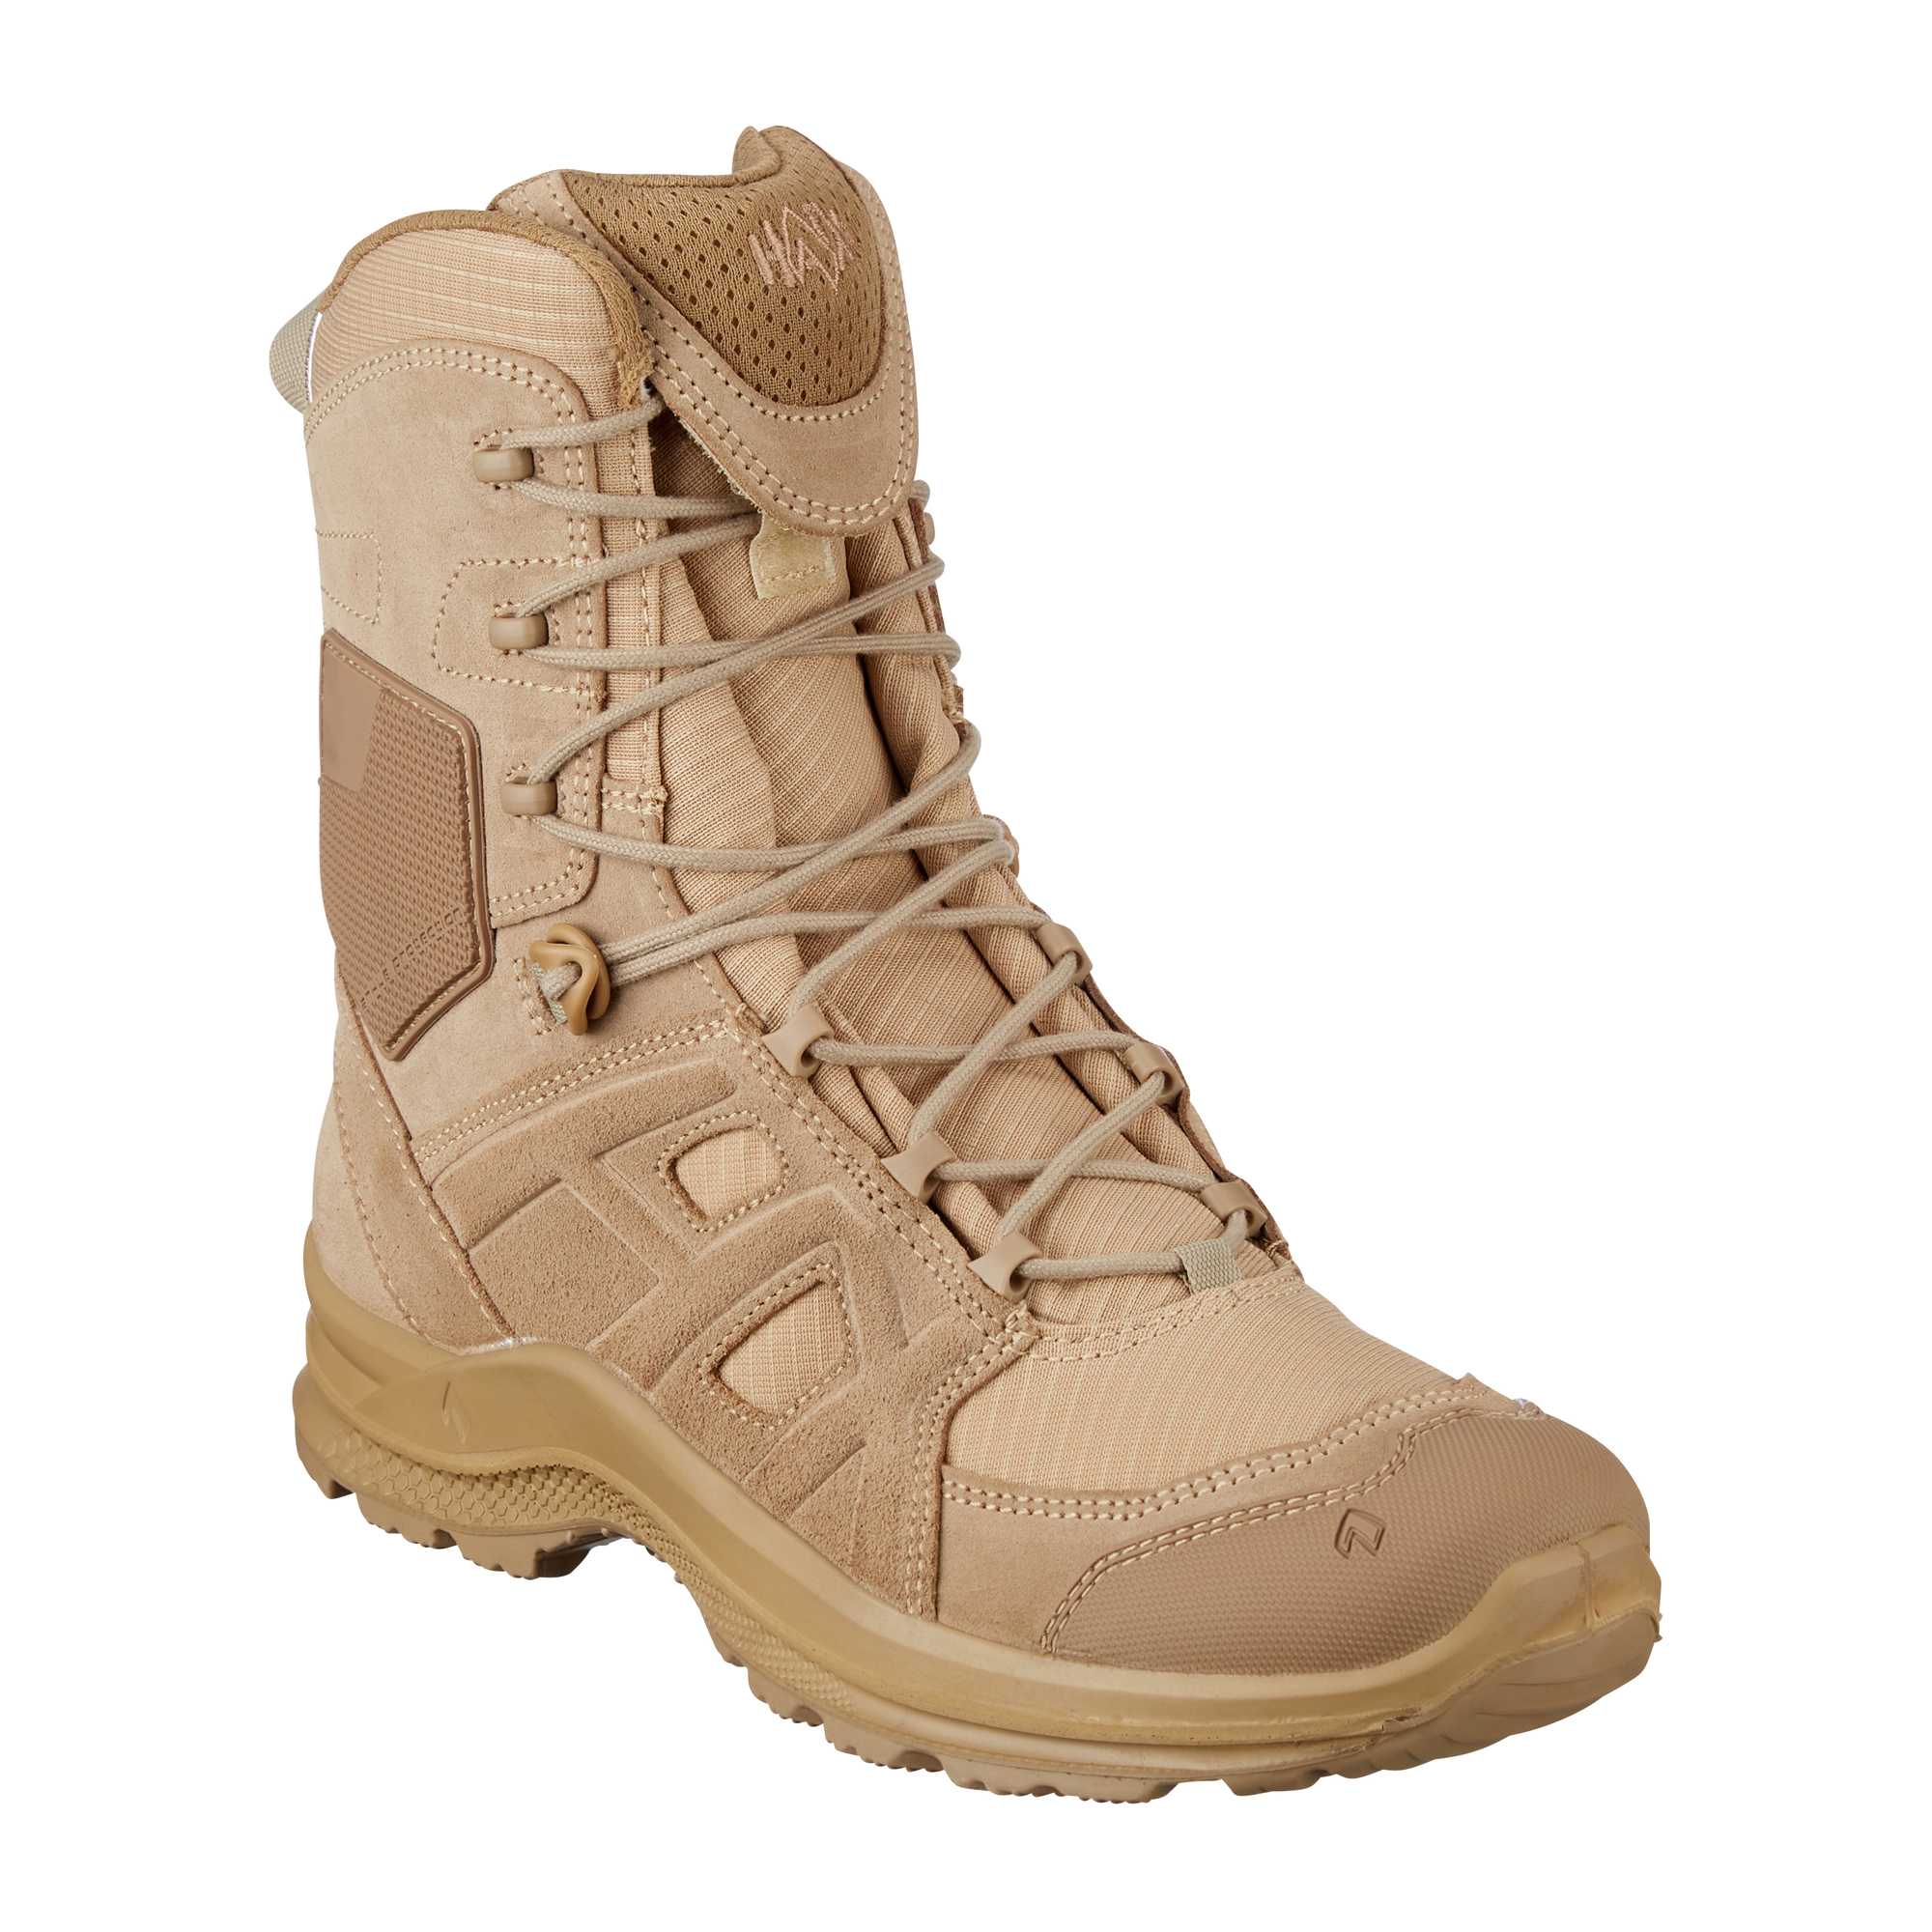 Haix Tactical Boots Black Eagle Athletic 2.0 V T high desert